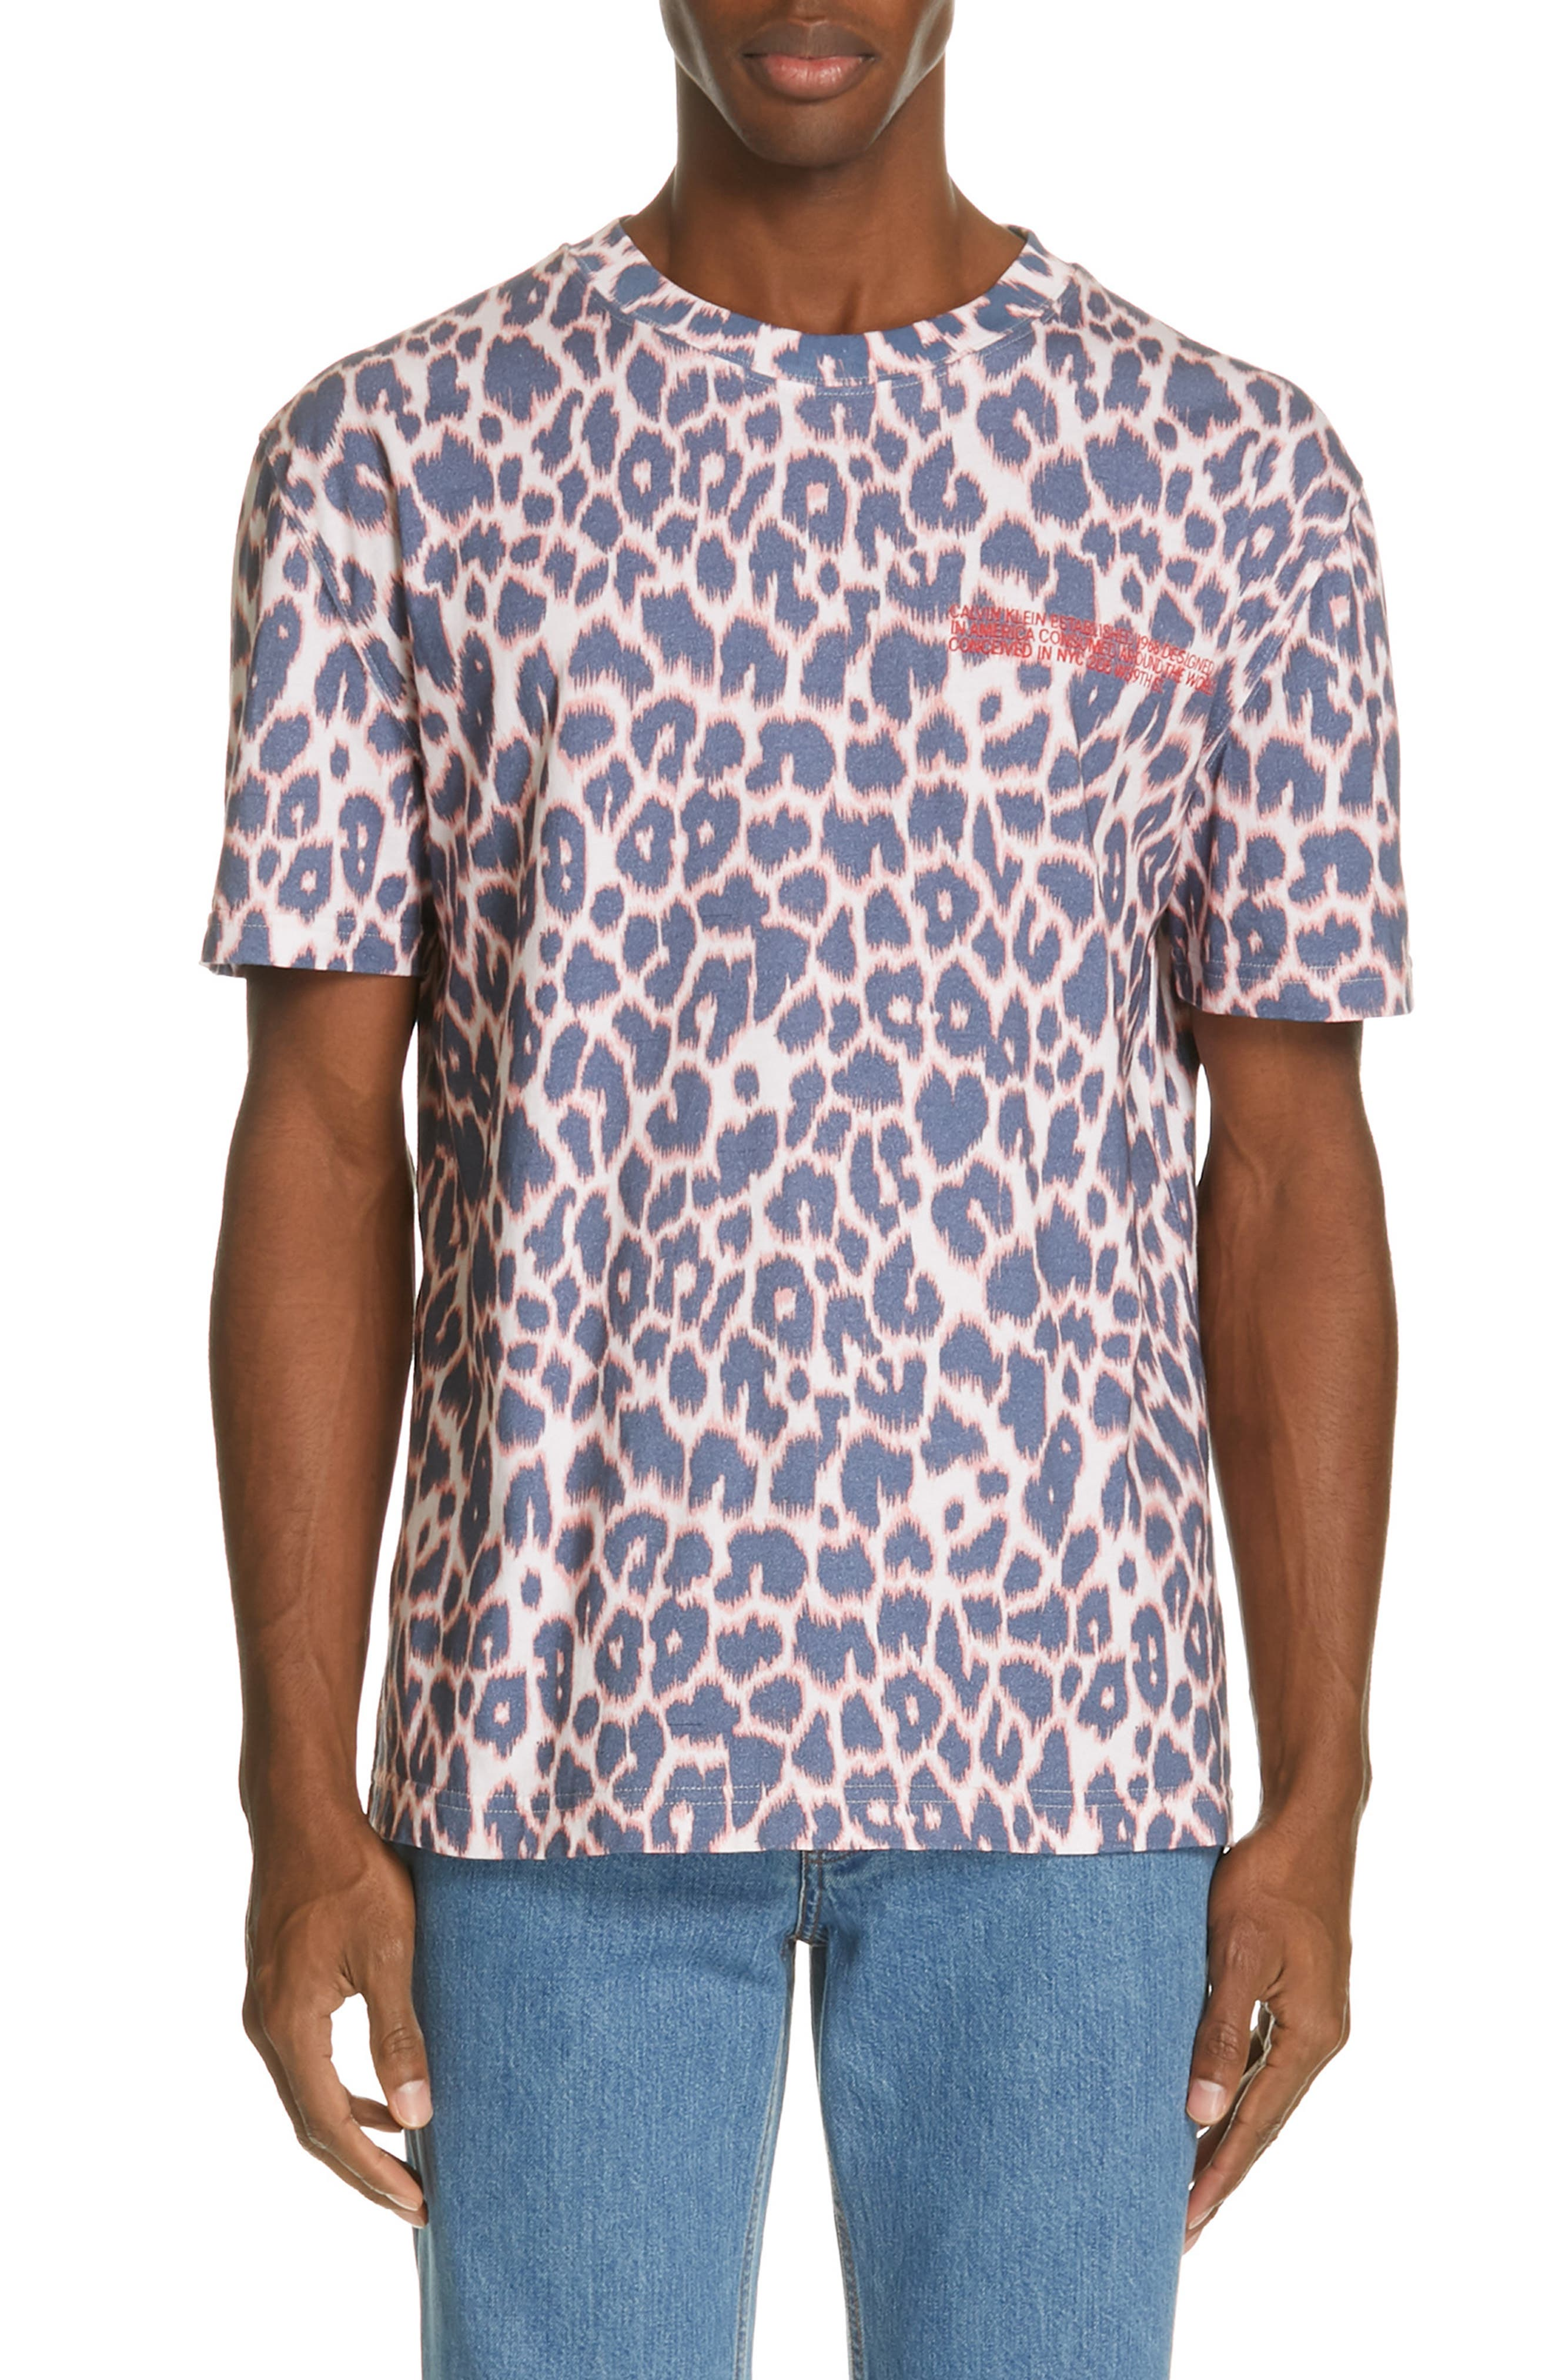 CALVIN KLEIN 205W39NYC, Electric Panther Print T-Shirt, Main thumbnail 1, color, ELECTRIC PANTHERE